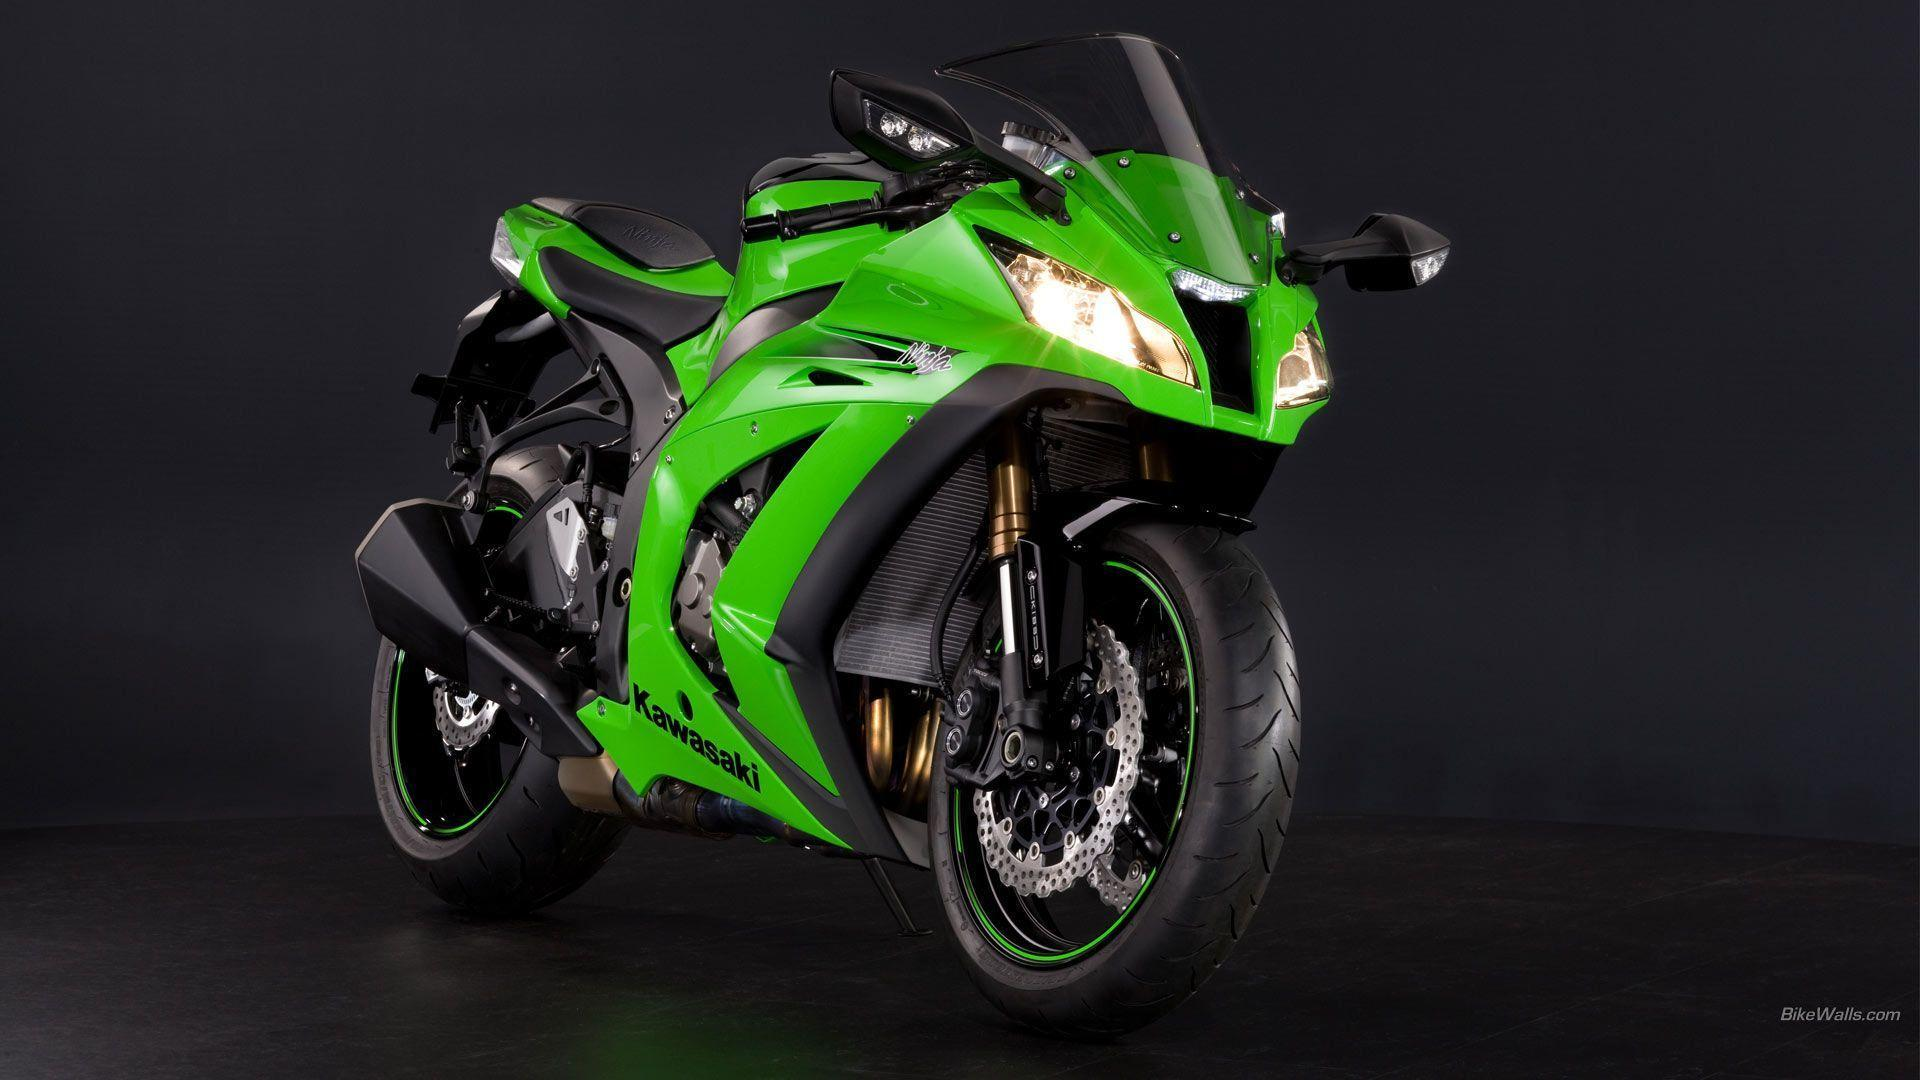 Kawasaki Ninja Zx10r HD Wallpapers